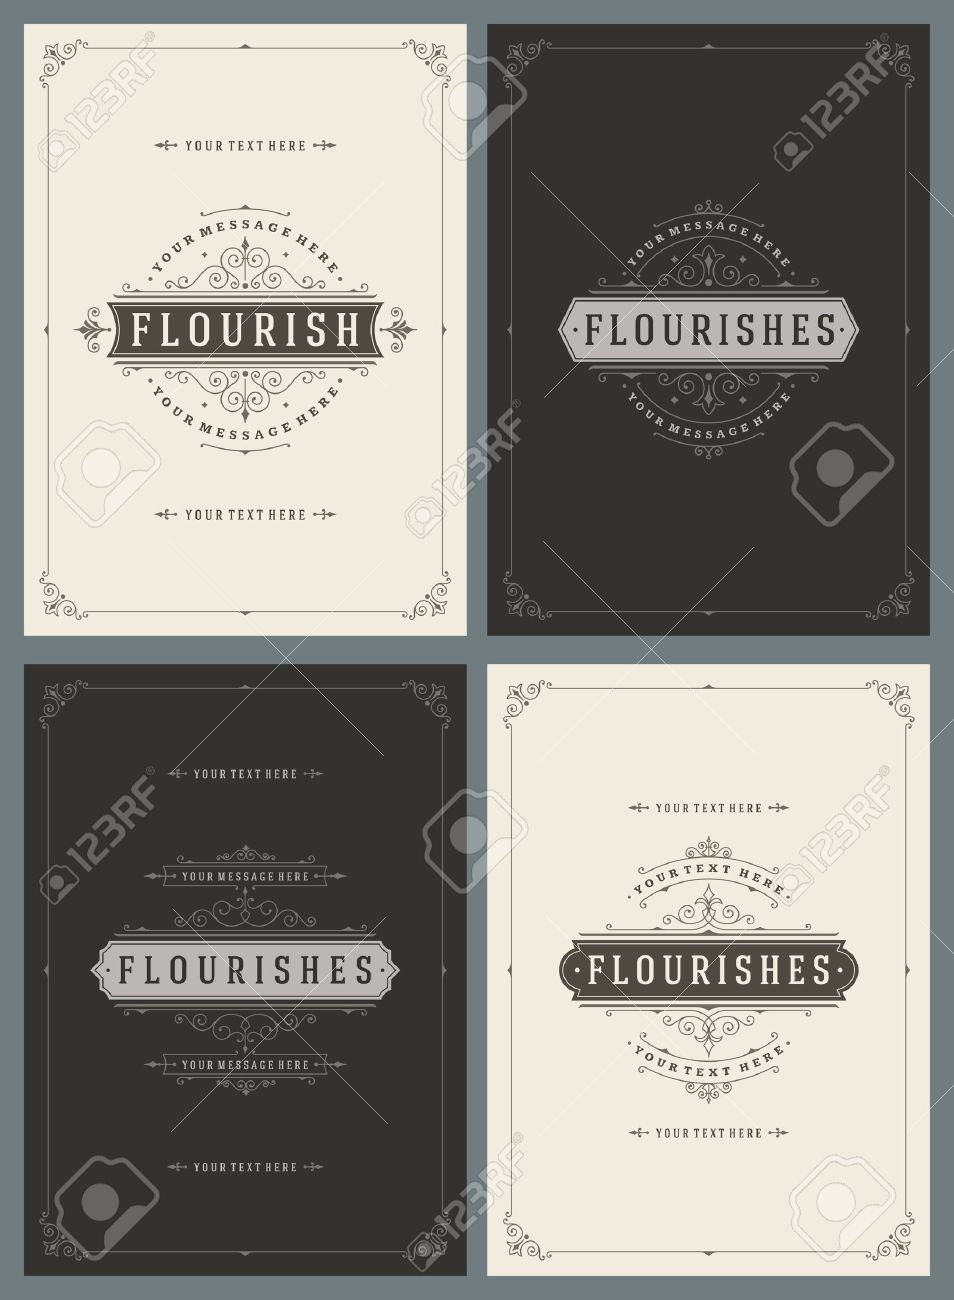 Vintage Ornament Greeting Cards Vector Templates Set. Retro Luxury Invitations, Royal Certificate, Book Covers. Flourishes frame. Vintage Background, Vintage Frame, Vintage Ornament, Ornaments Vector. - 51864586